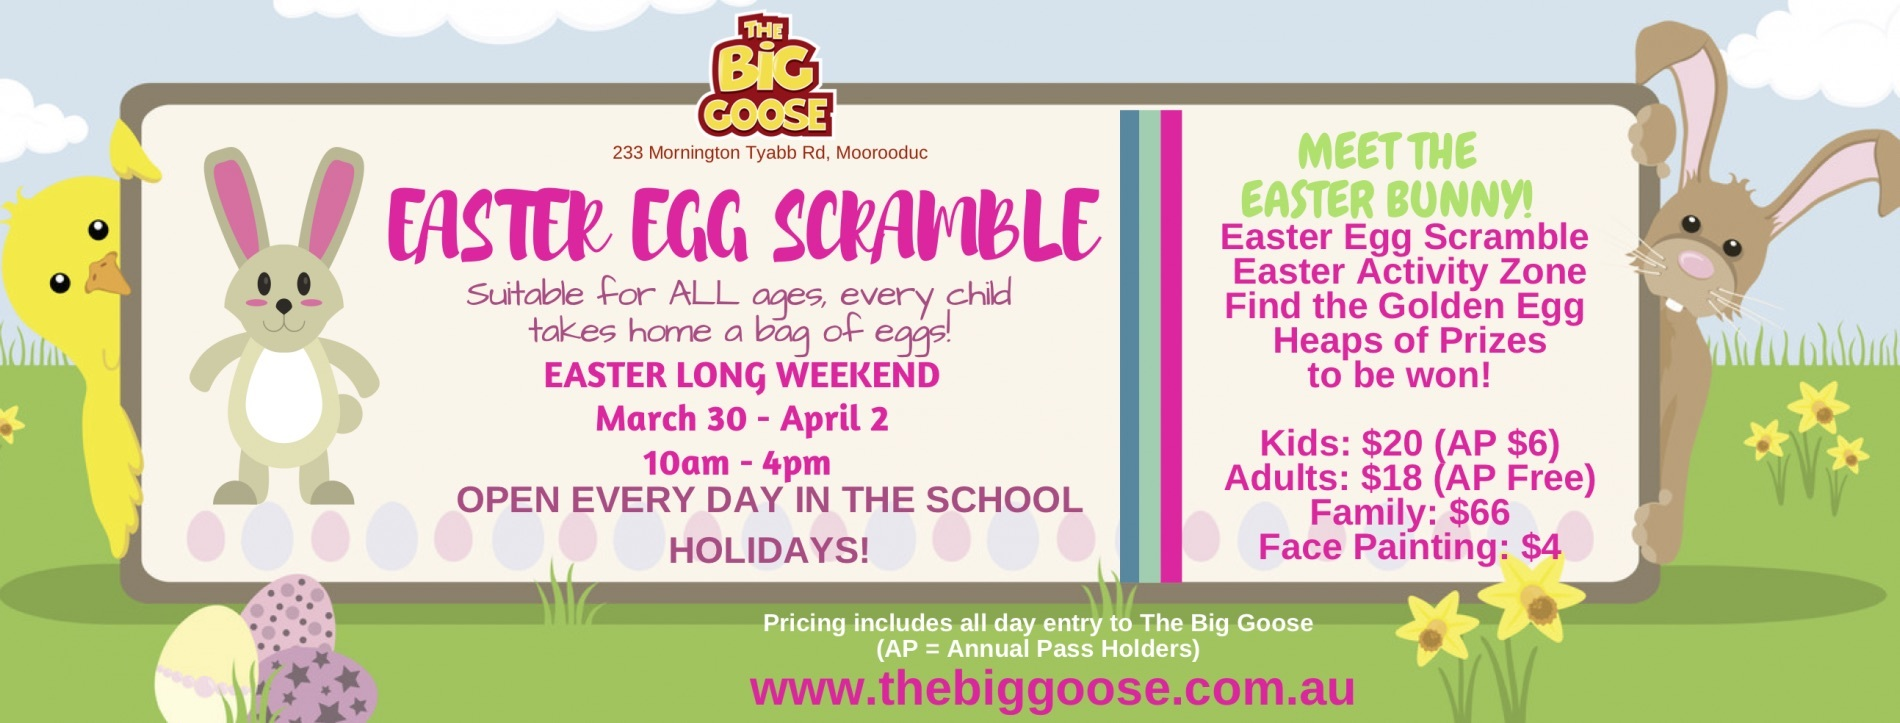 The big goose easter egg scramble melbourne the annual easter egg scramble returns to the big goose this easter long weekend negle Gallery